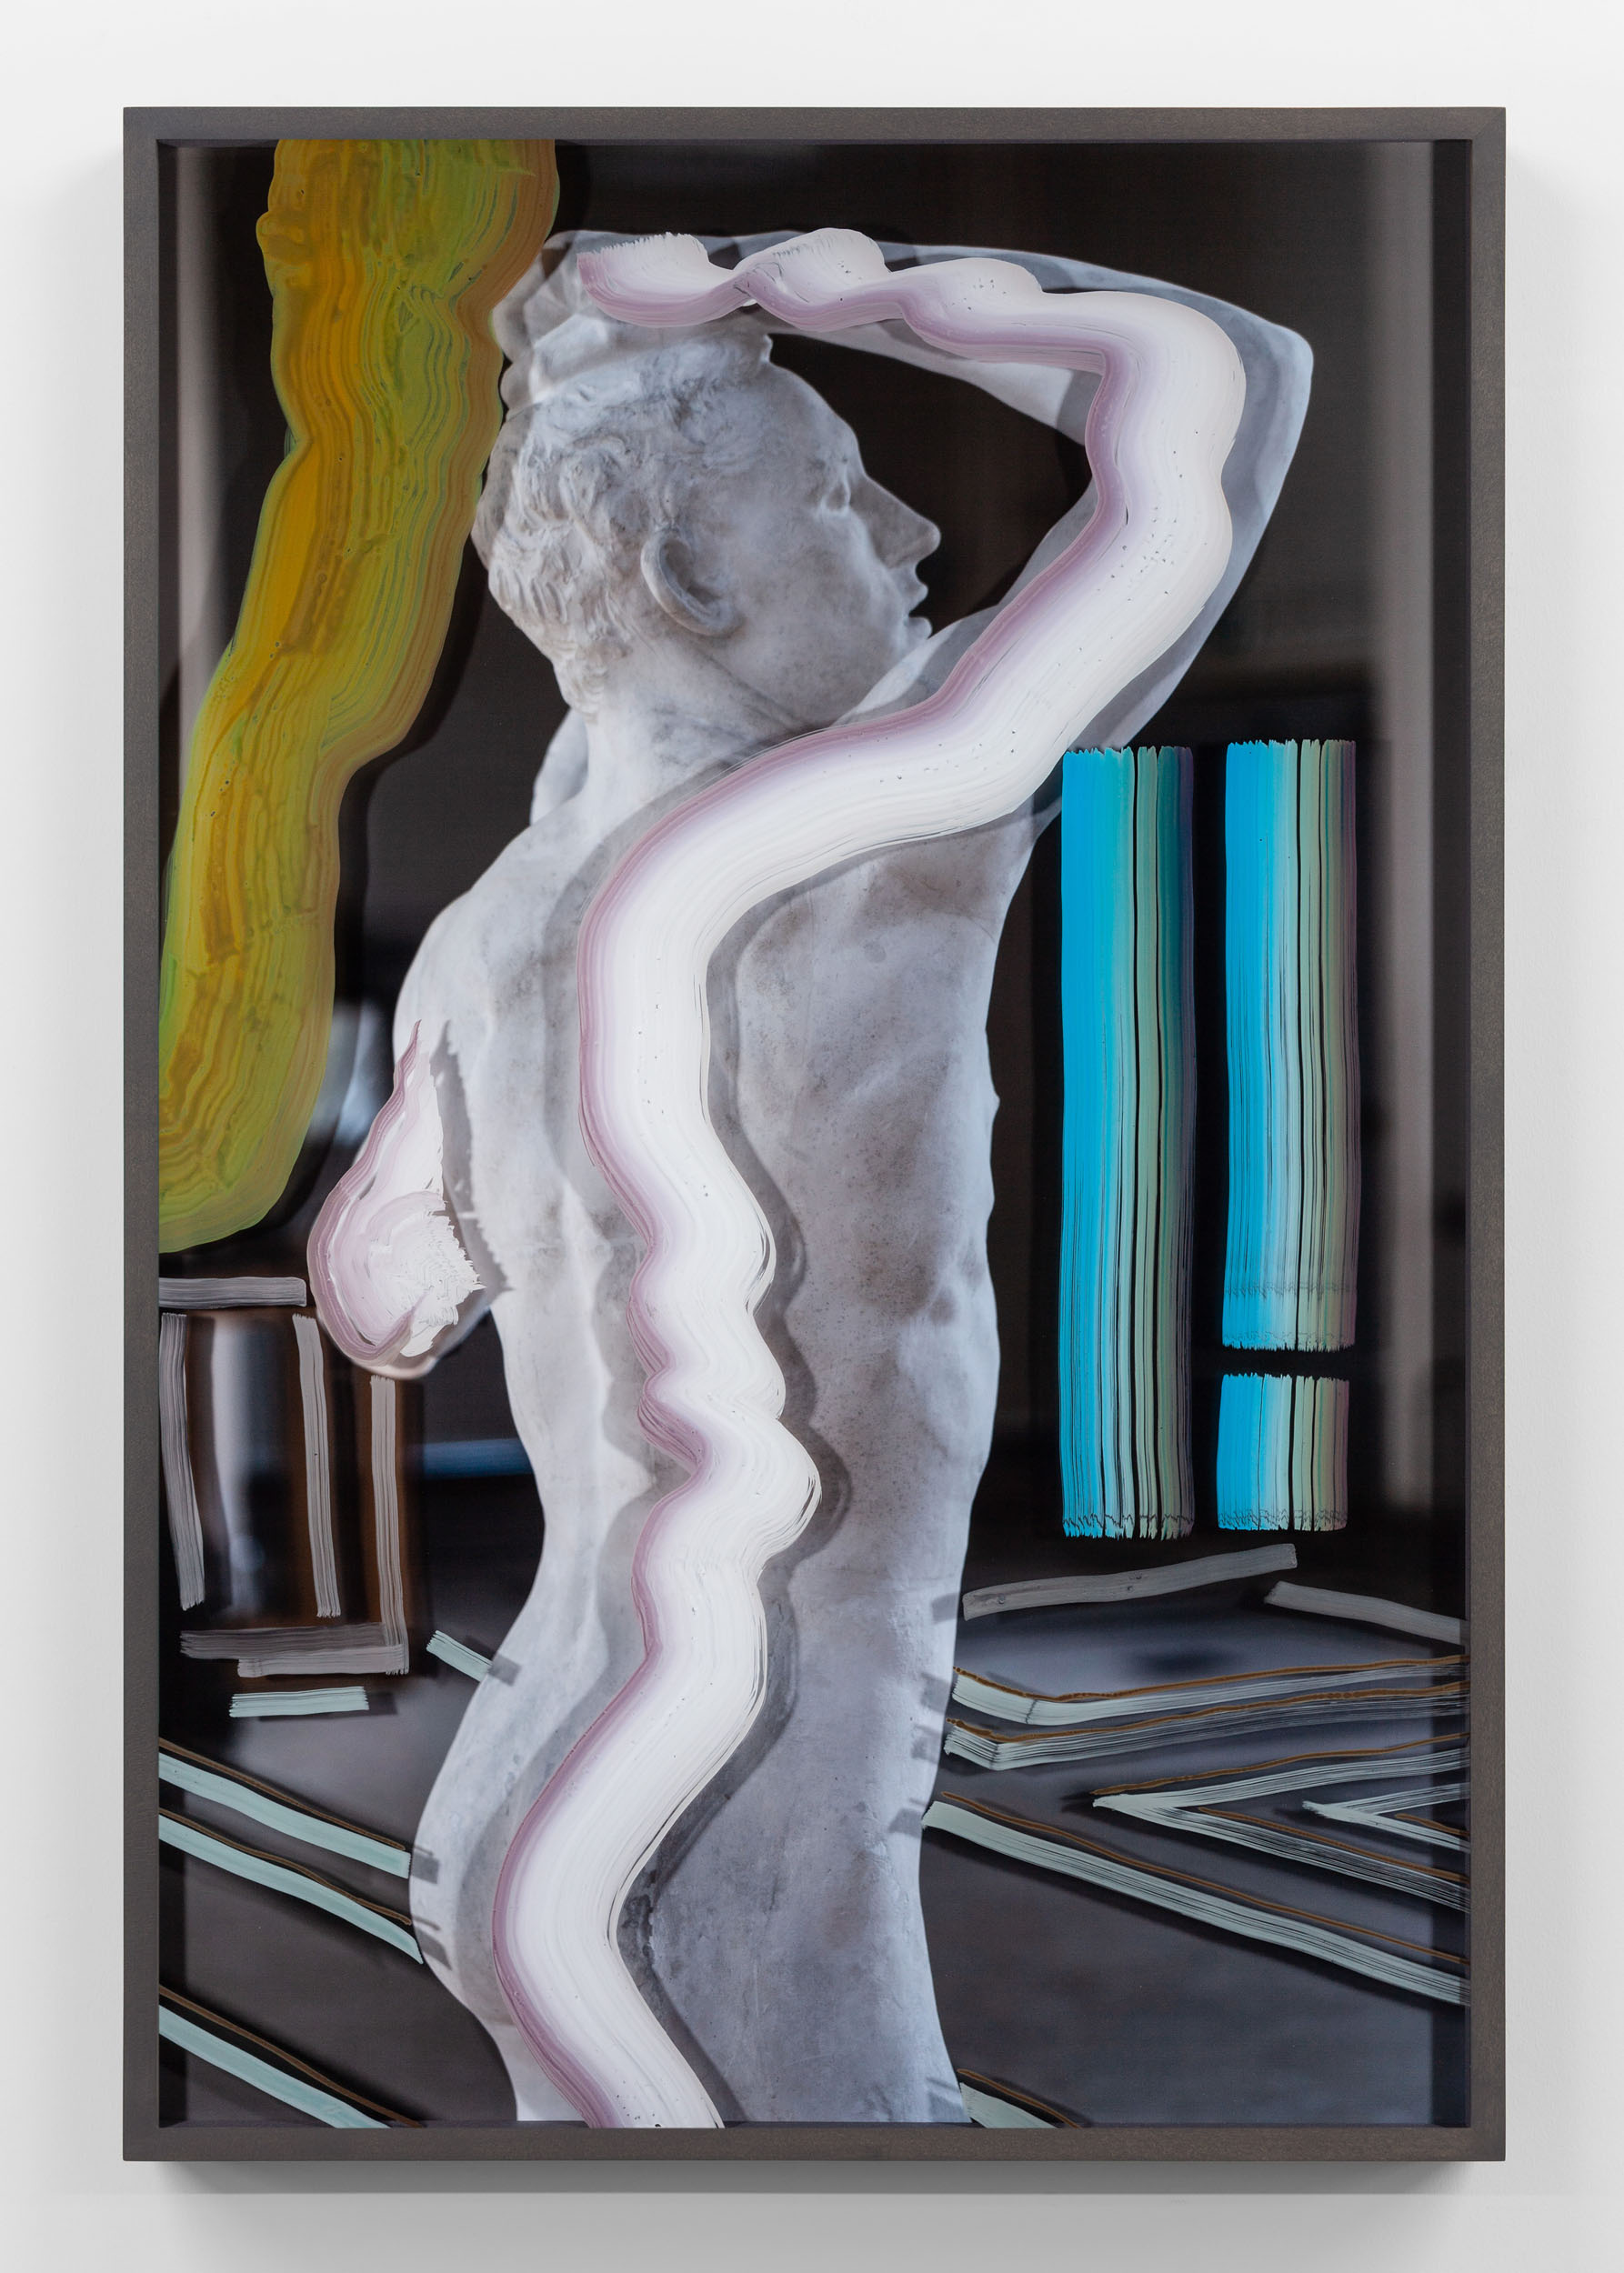 Untitled (Age of Bronze right side) 2019, hand-painted museum acrylic over archival pigment print 91.5 x 61 cm / 36 x 24 in. Unique work